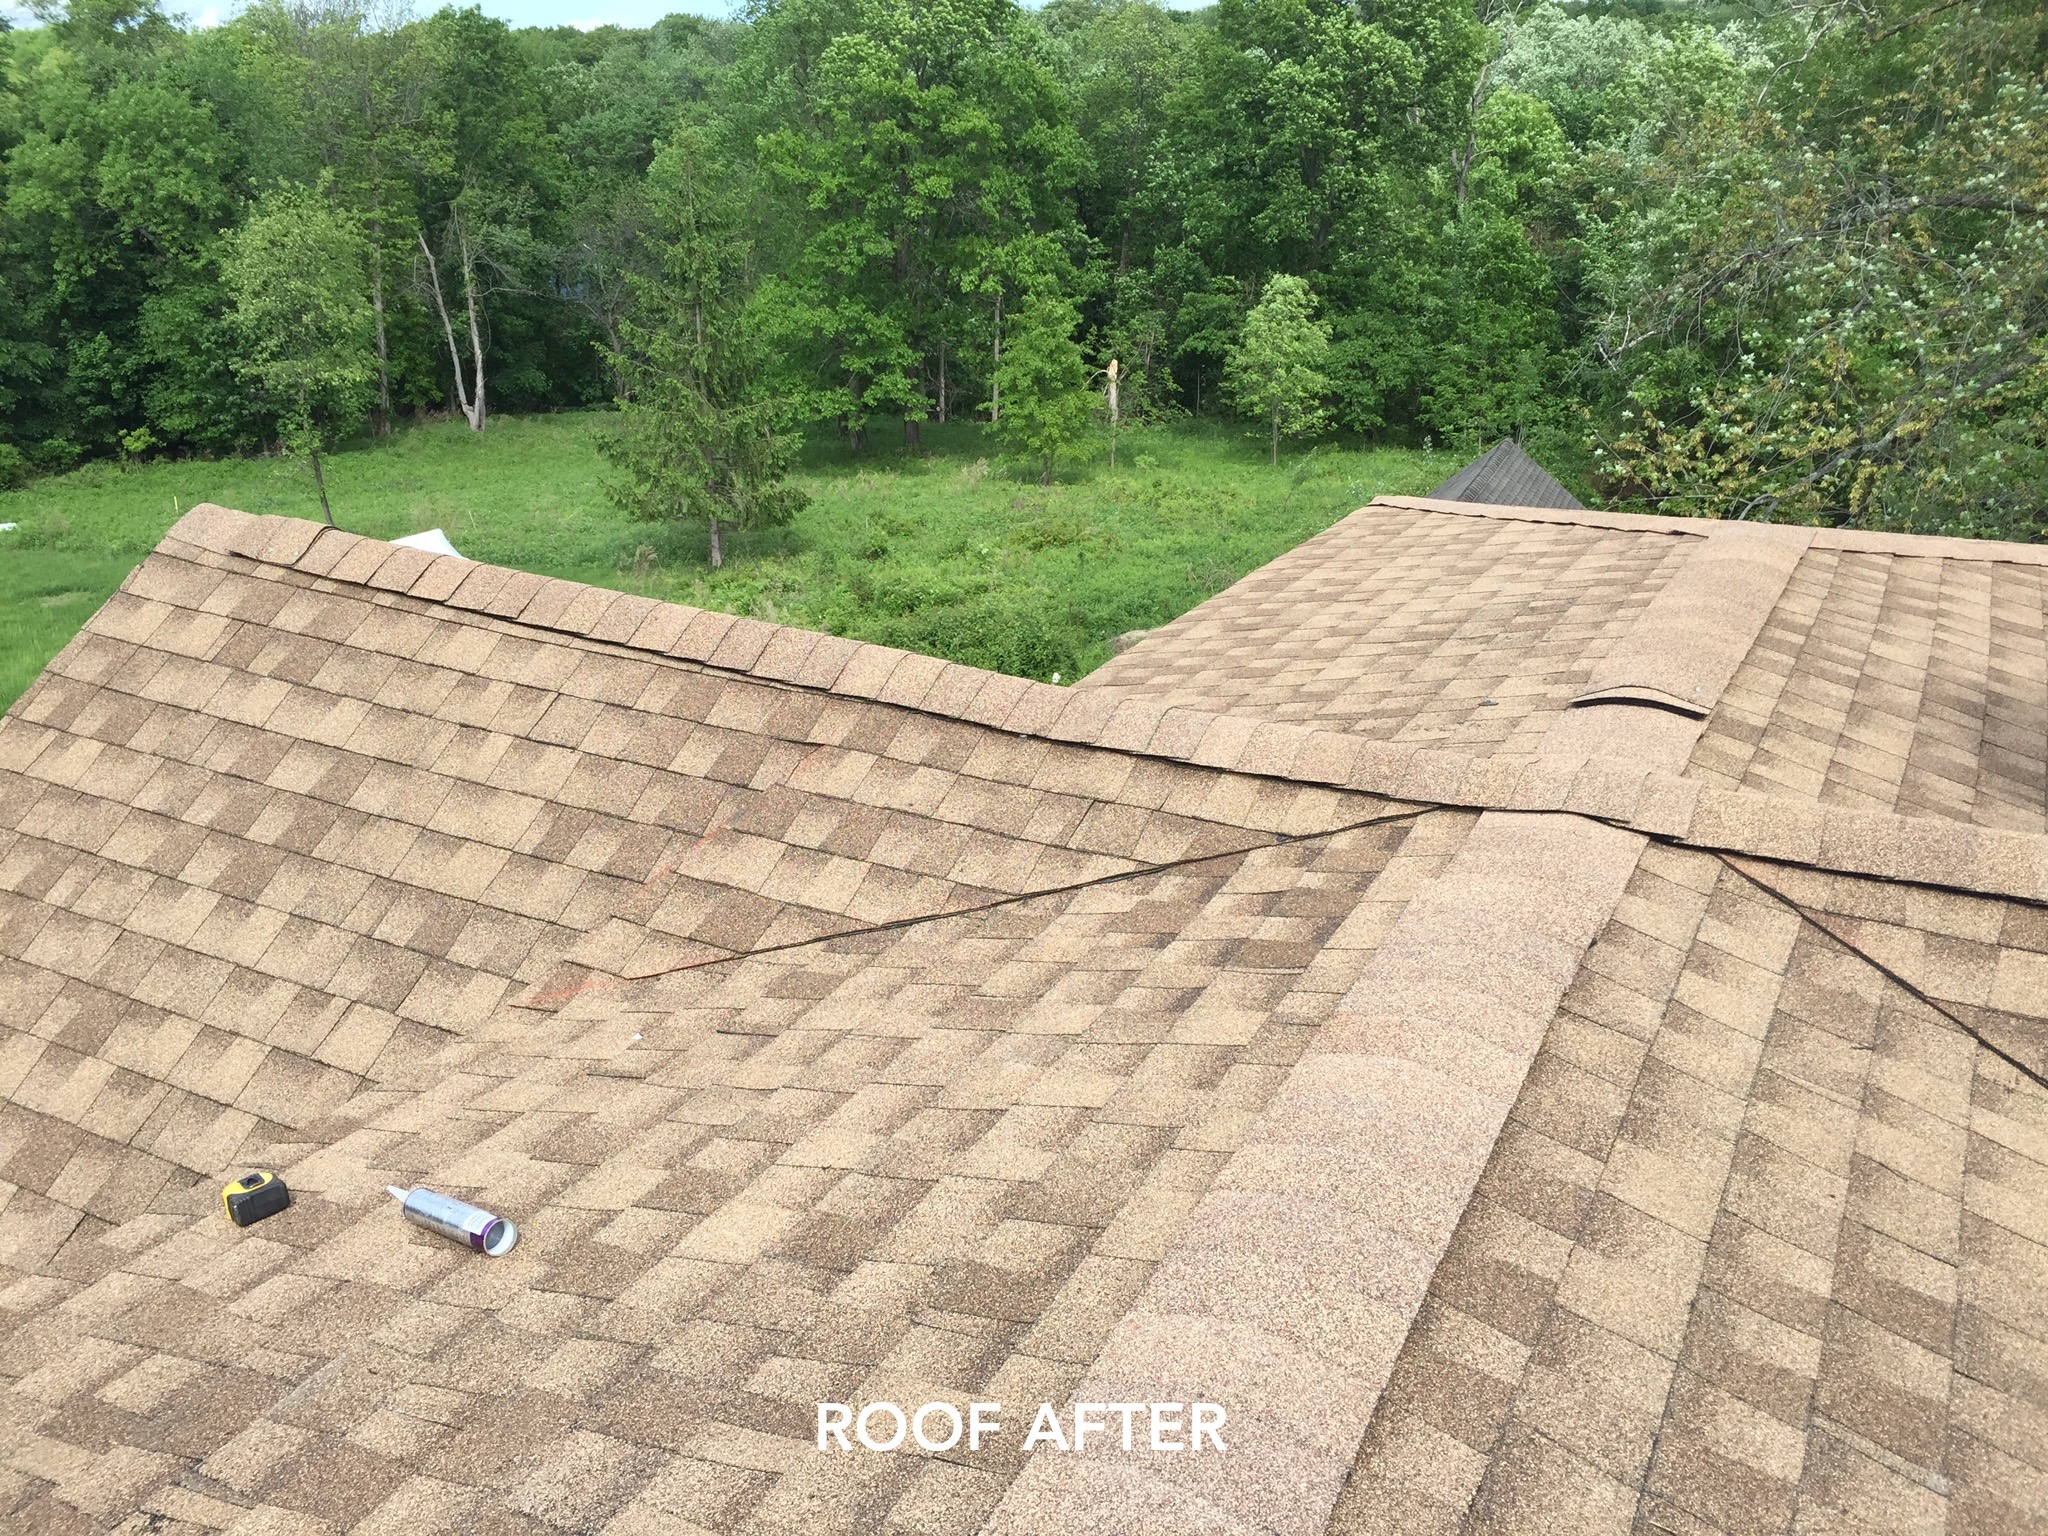 Roofing Contractor Dutchess County Orange County Ny